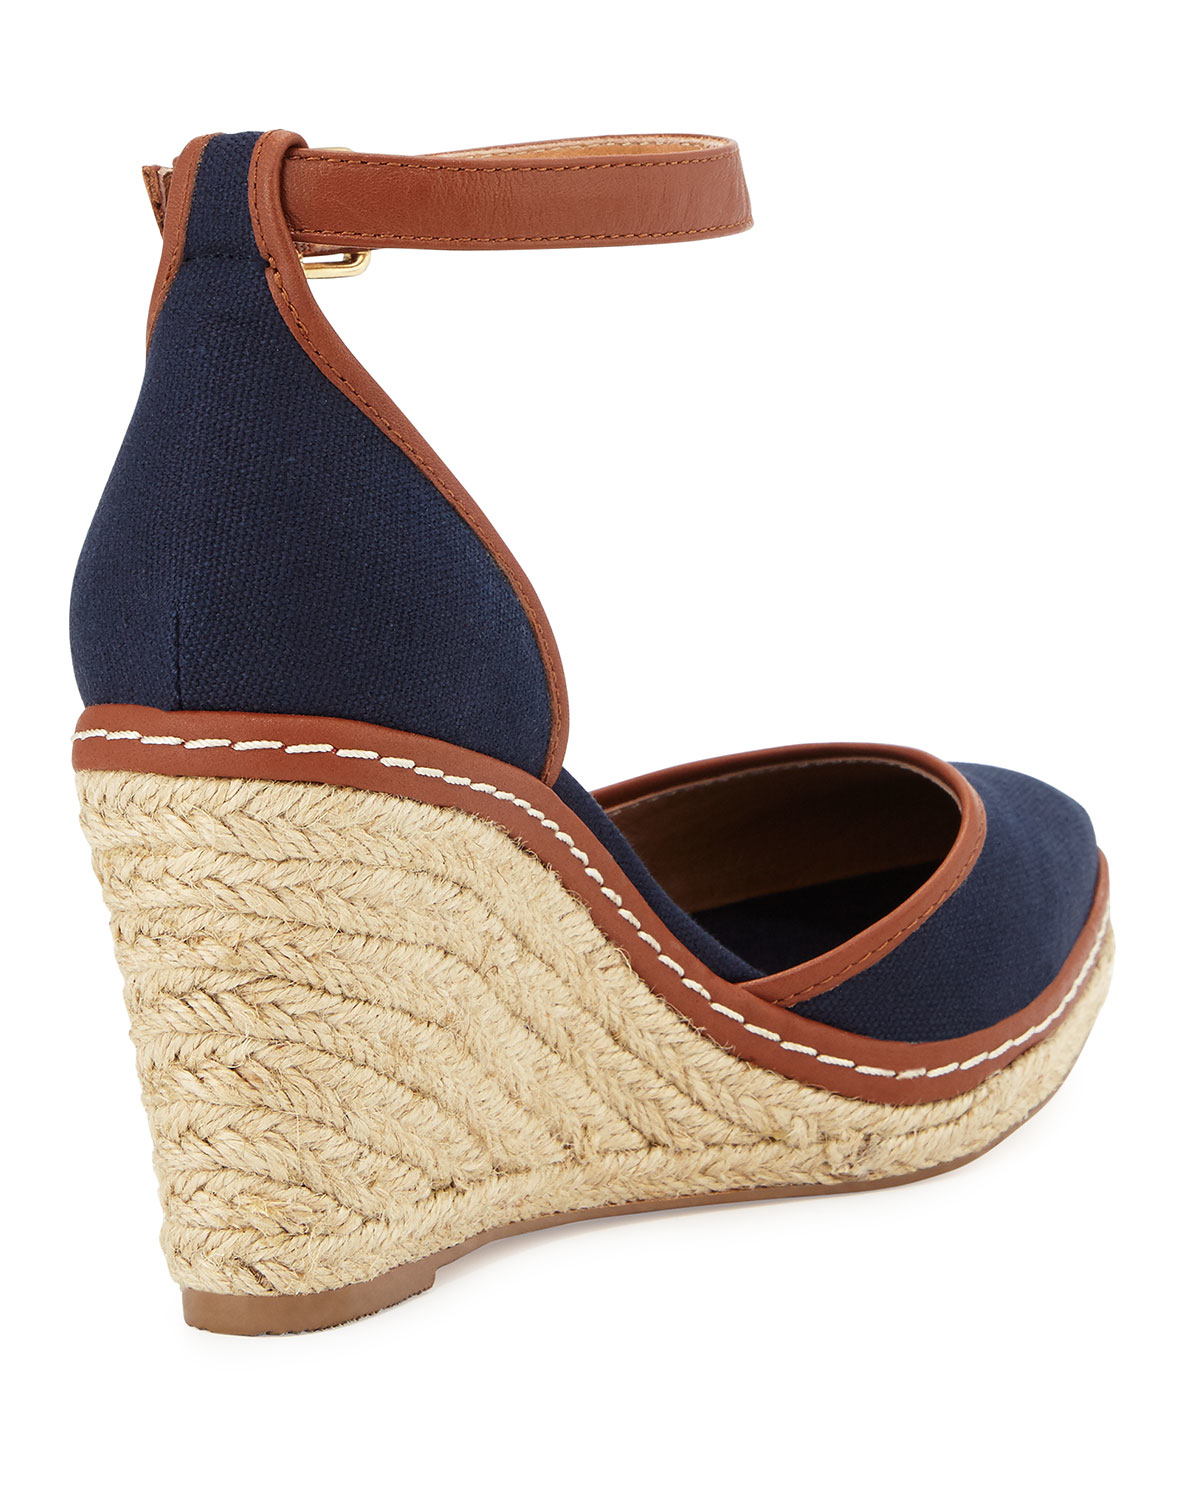 6e93bf964b0 Lyst - Charles David Keiko Closed-toe Canvas Espadrille Wedge in Brown